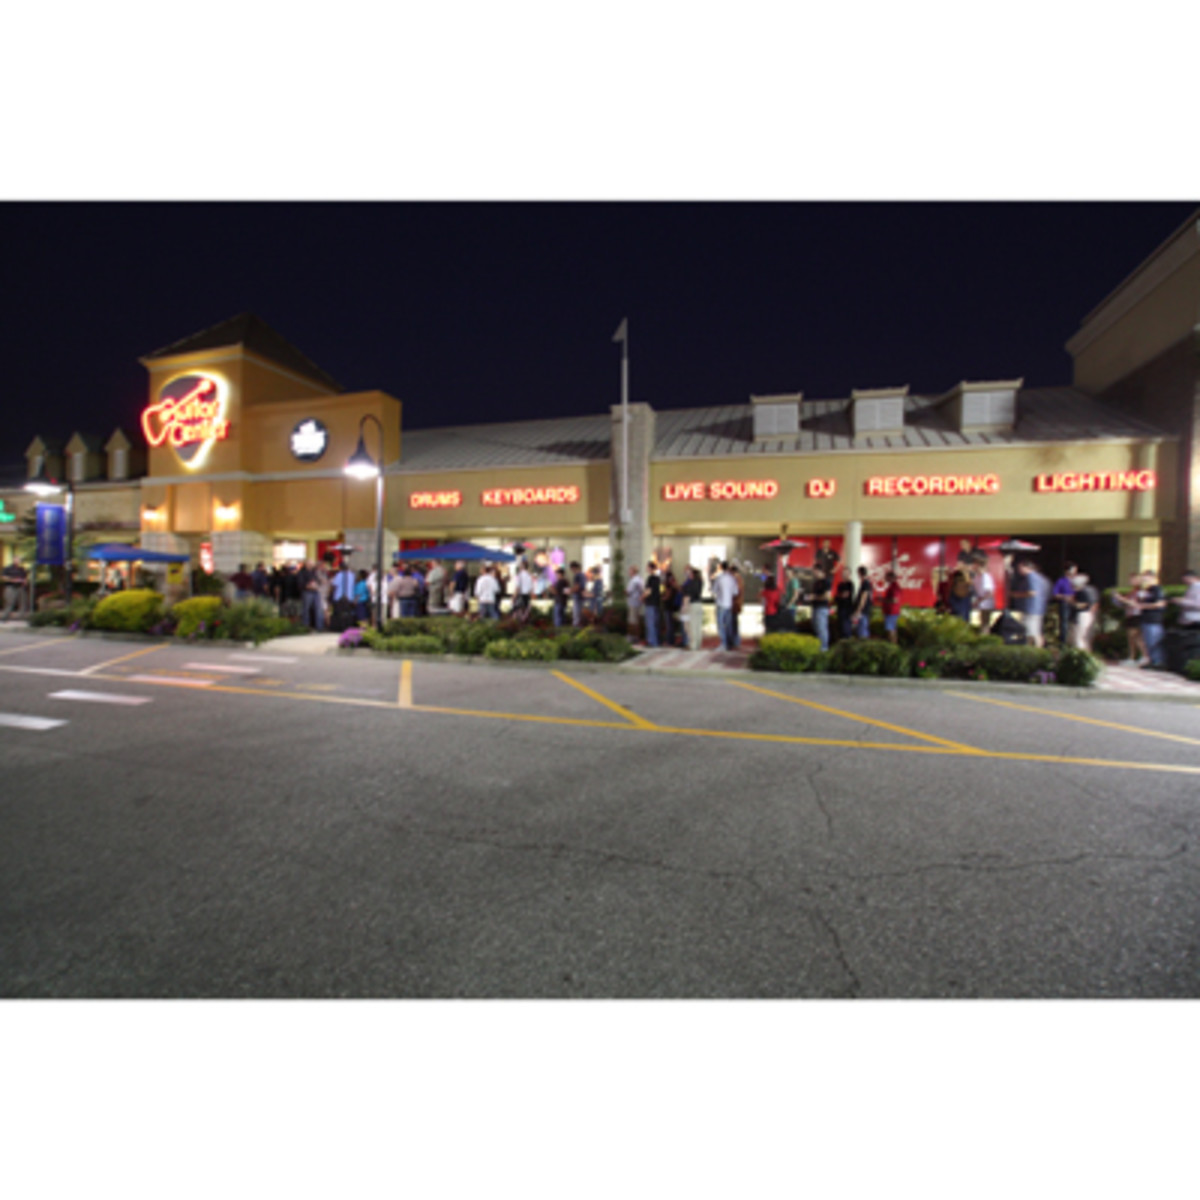 guitarcenter2.jpg  sc 1 st  DJBooth & Guitar Center Superstore Opened in Sarasota FL - DJBooth